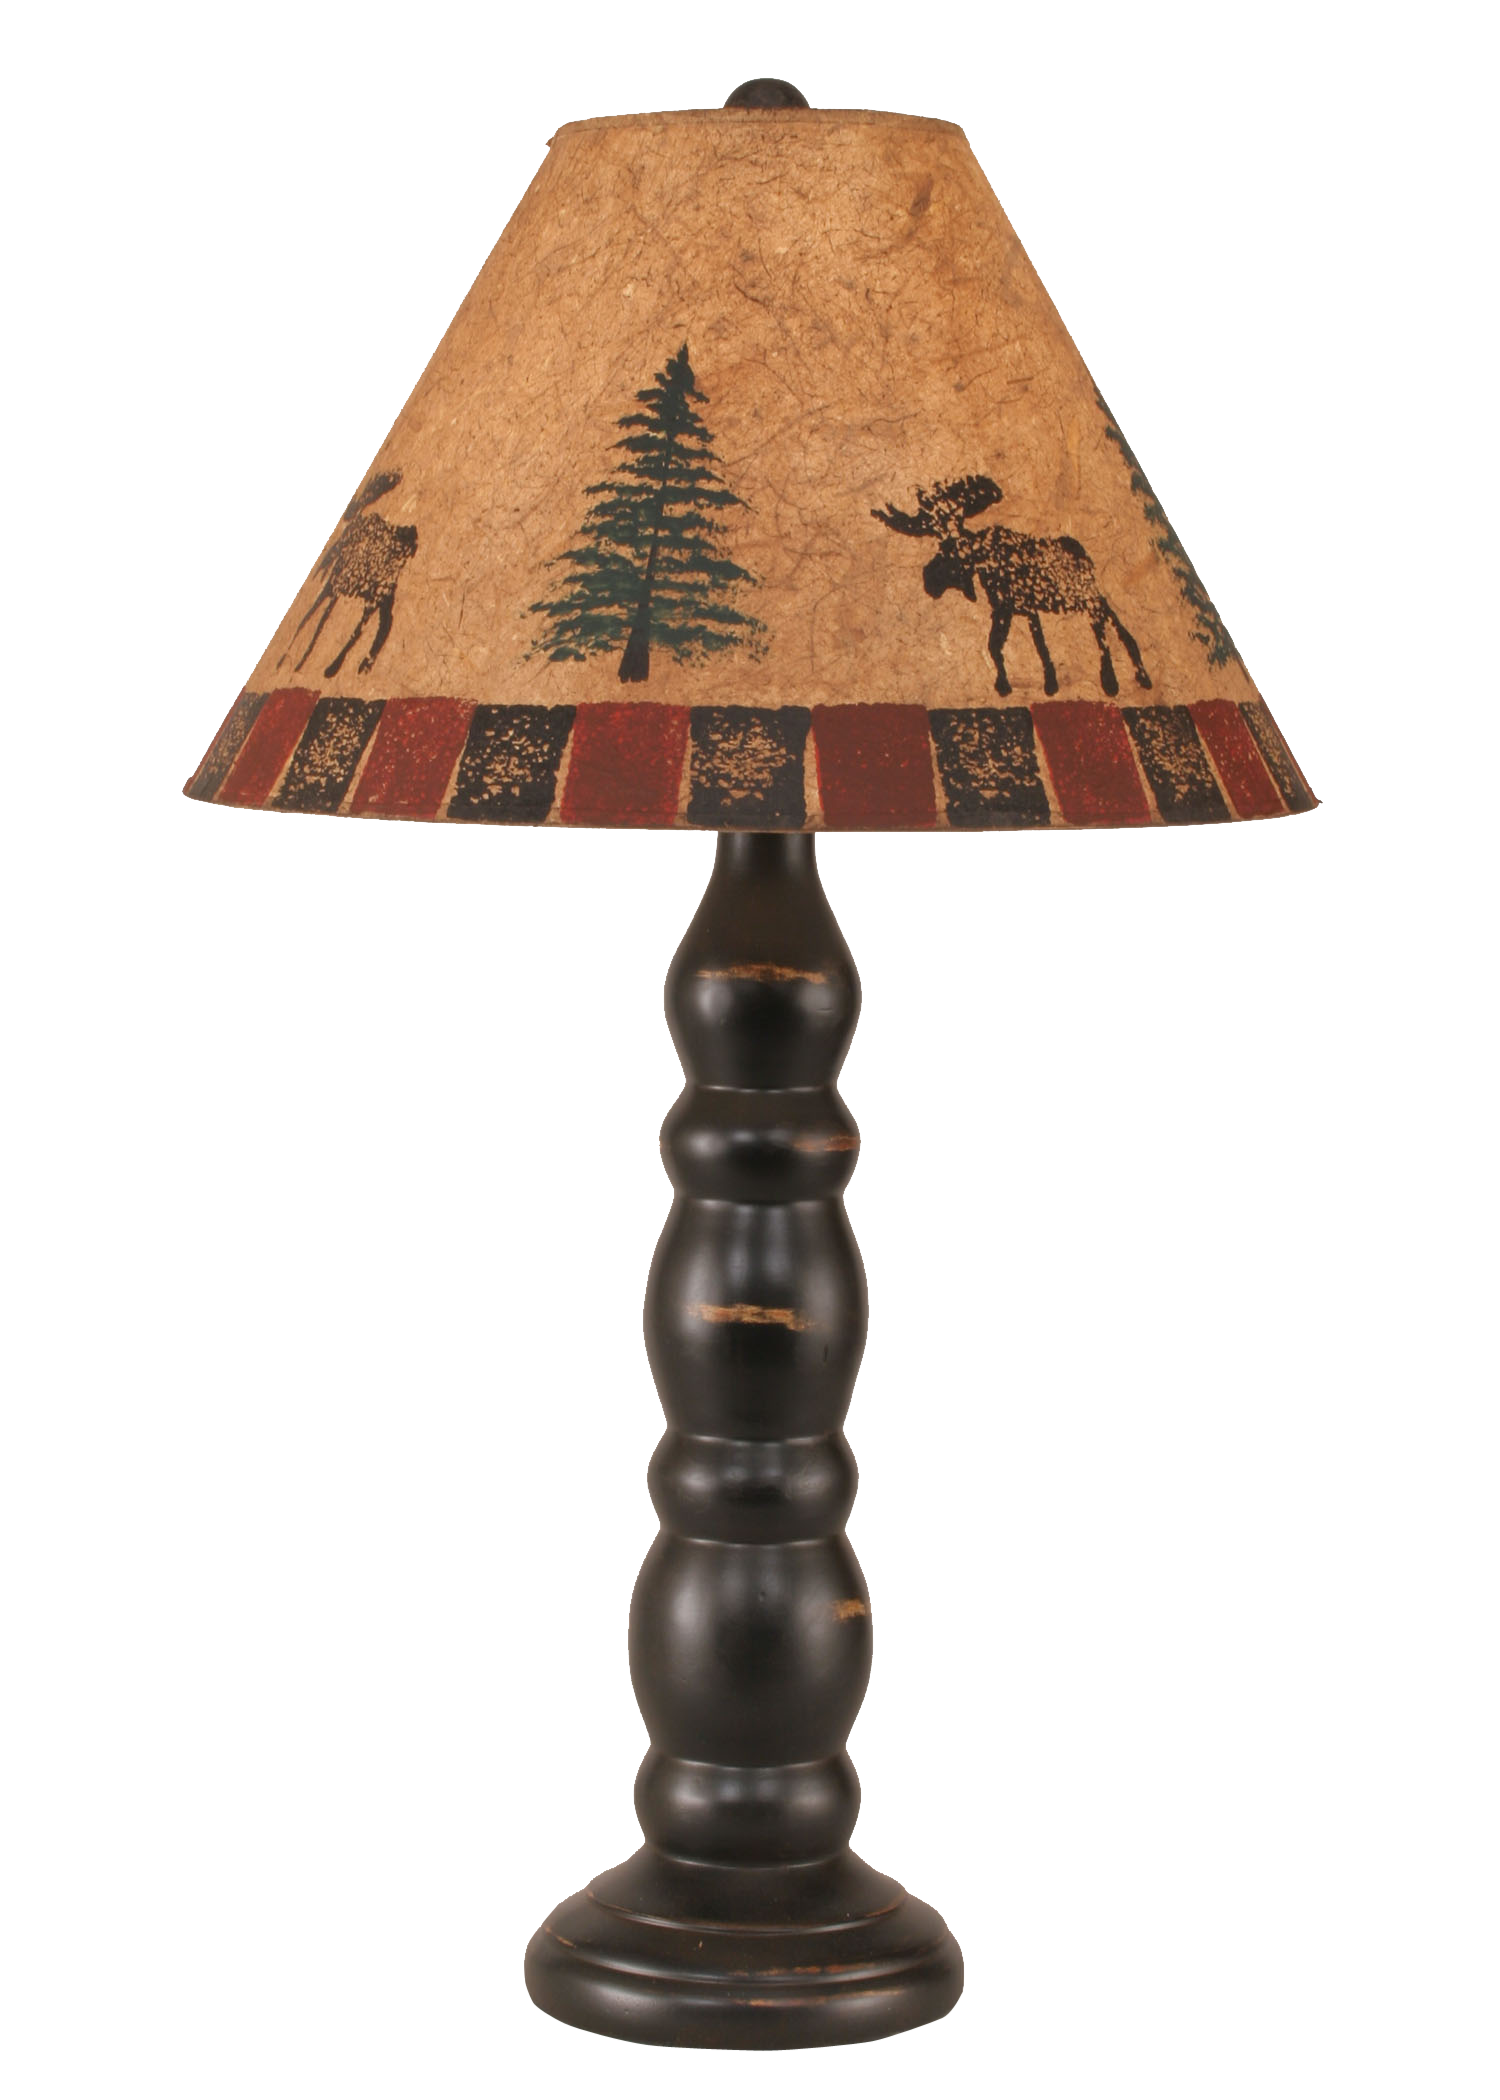 Distressed Black Sectioned Candlestick Table Lamp w/ Moose and Trees Shade - Coast Lamp Shop